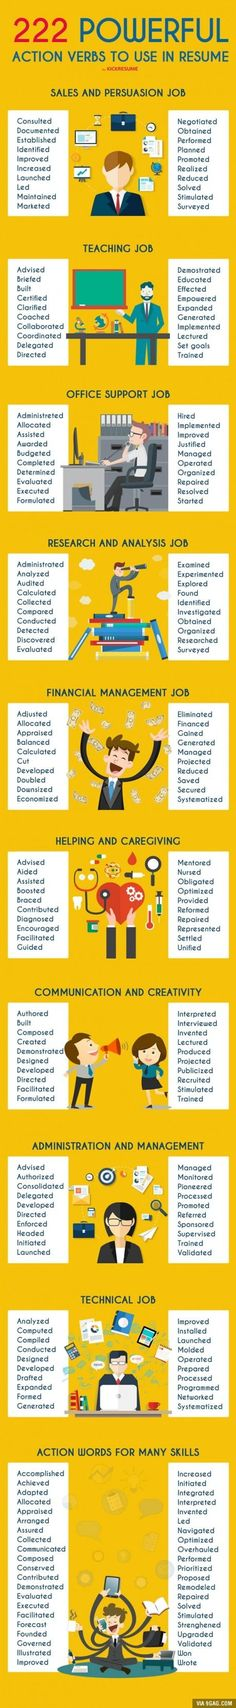 Resume Cheat Sheet: 222 Action Verbs To Use In Your New Resume photography